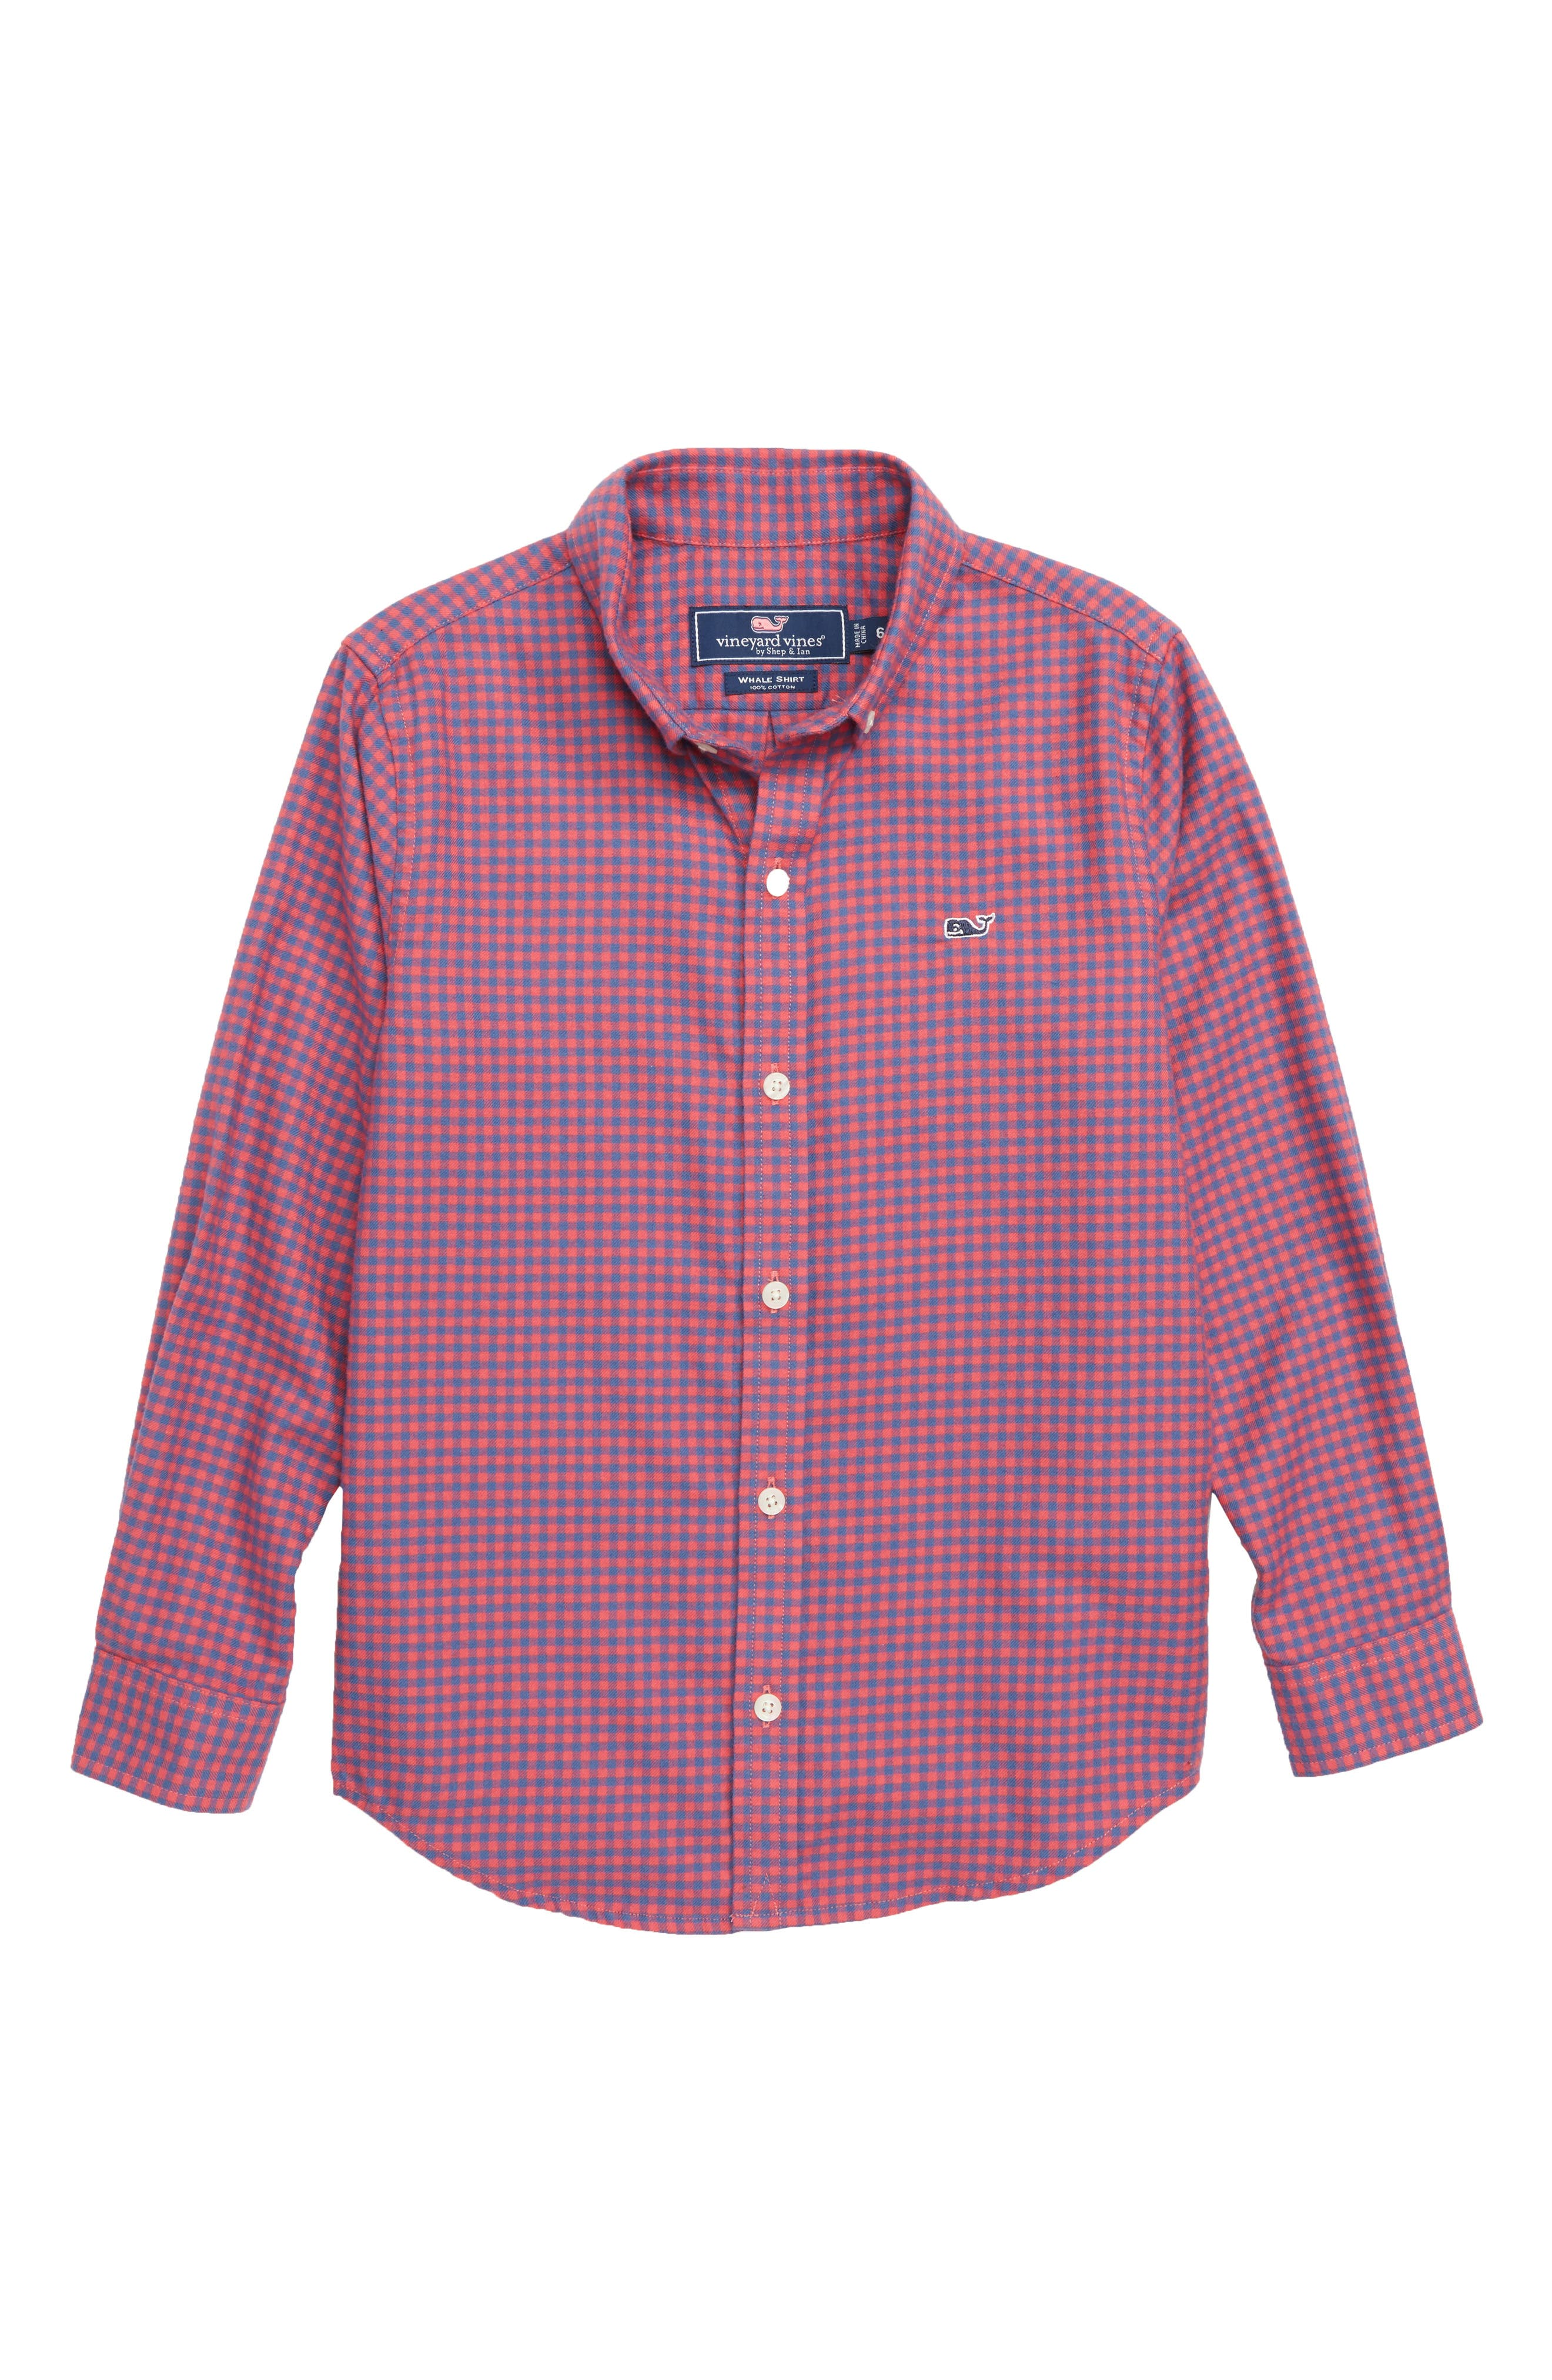 Trade Winds Flannel Whale Shirt,                             Main thumbnail 1, color,                             SAILORS RED